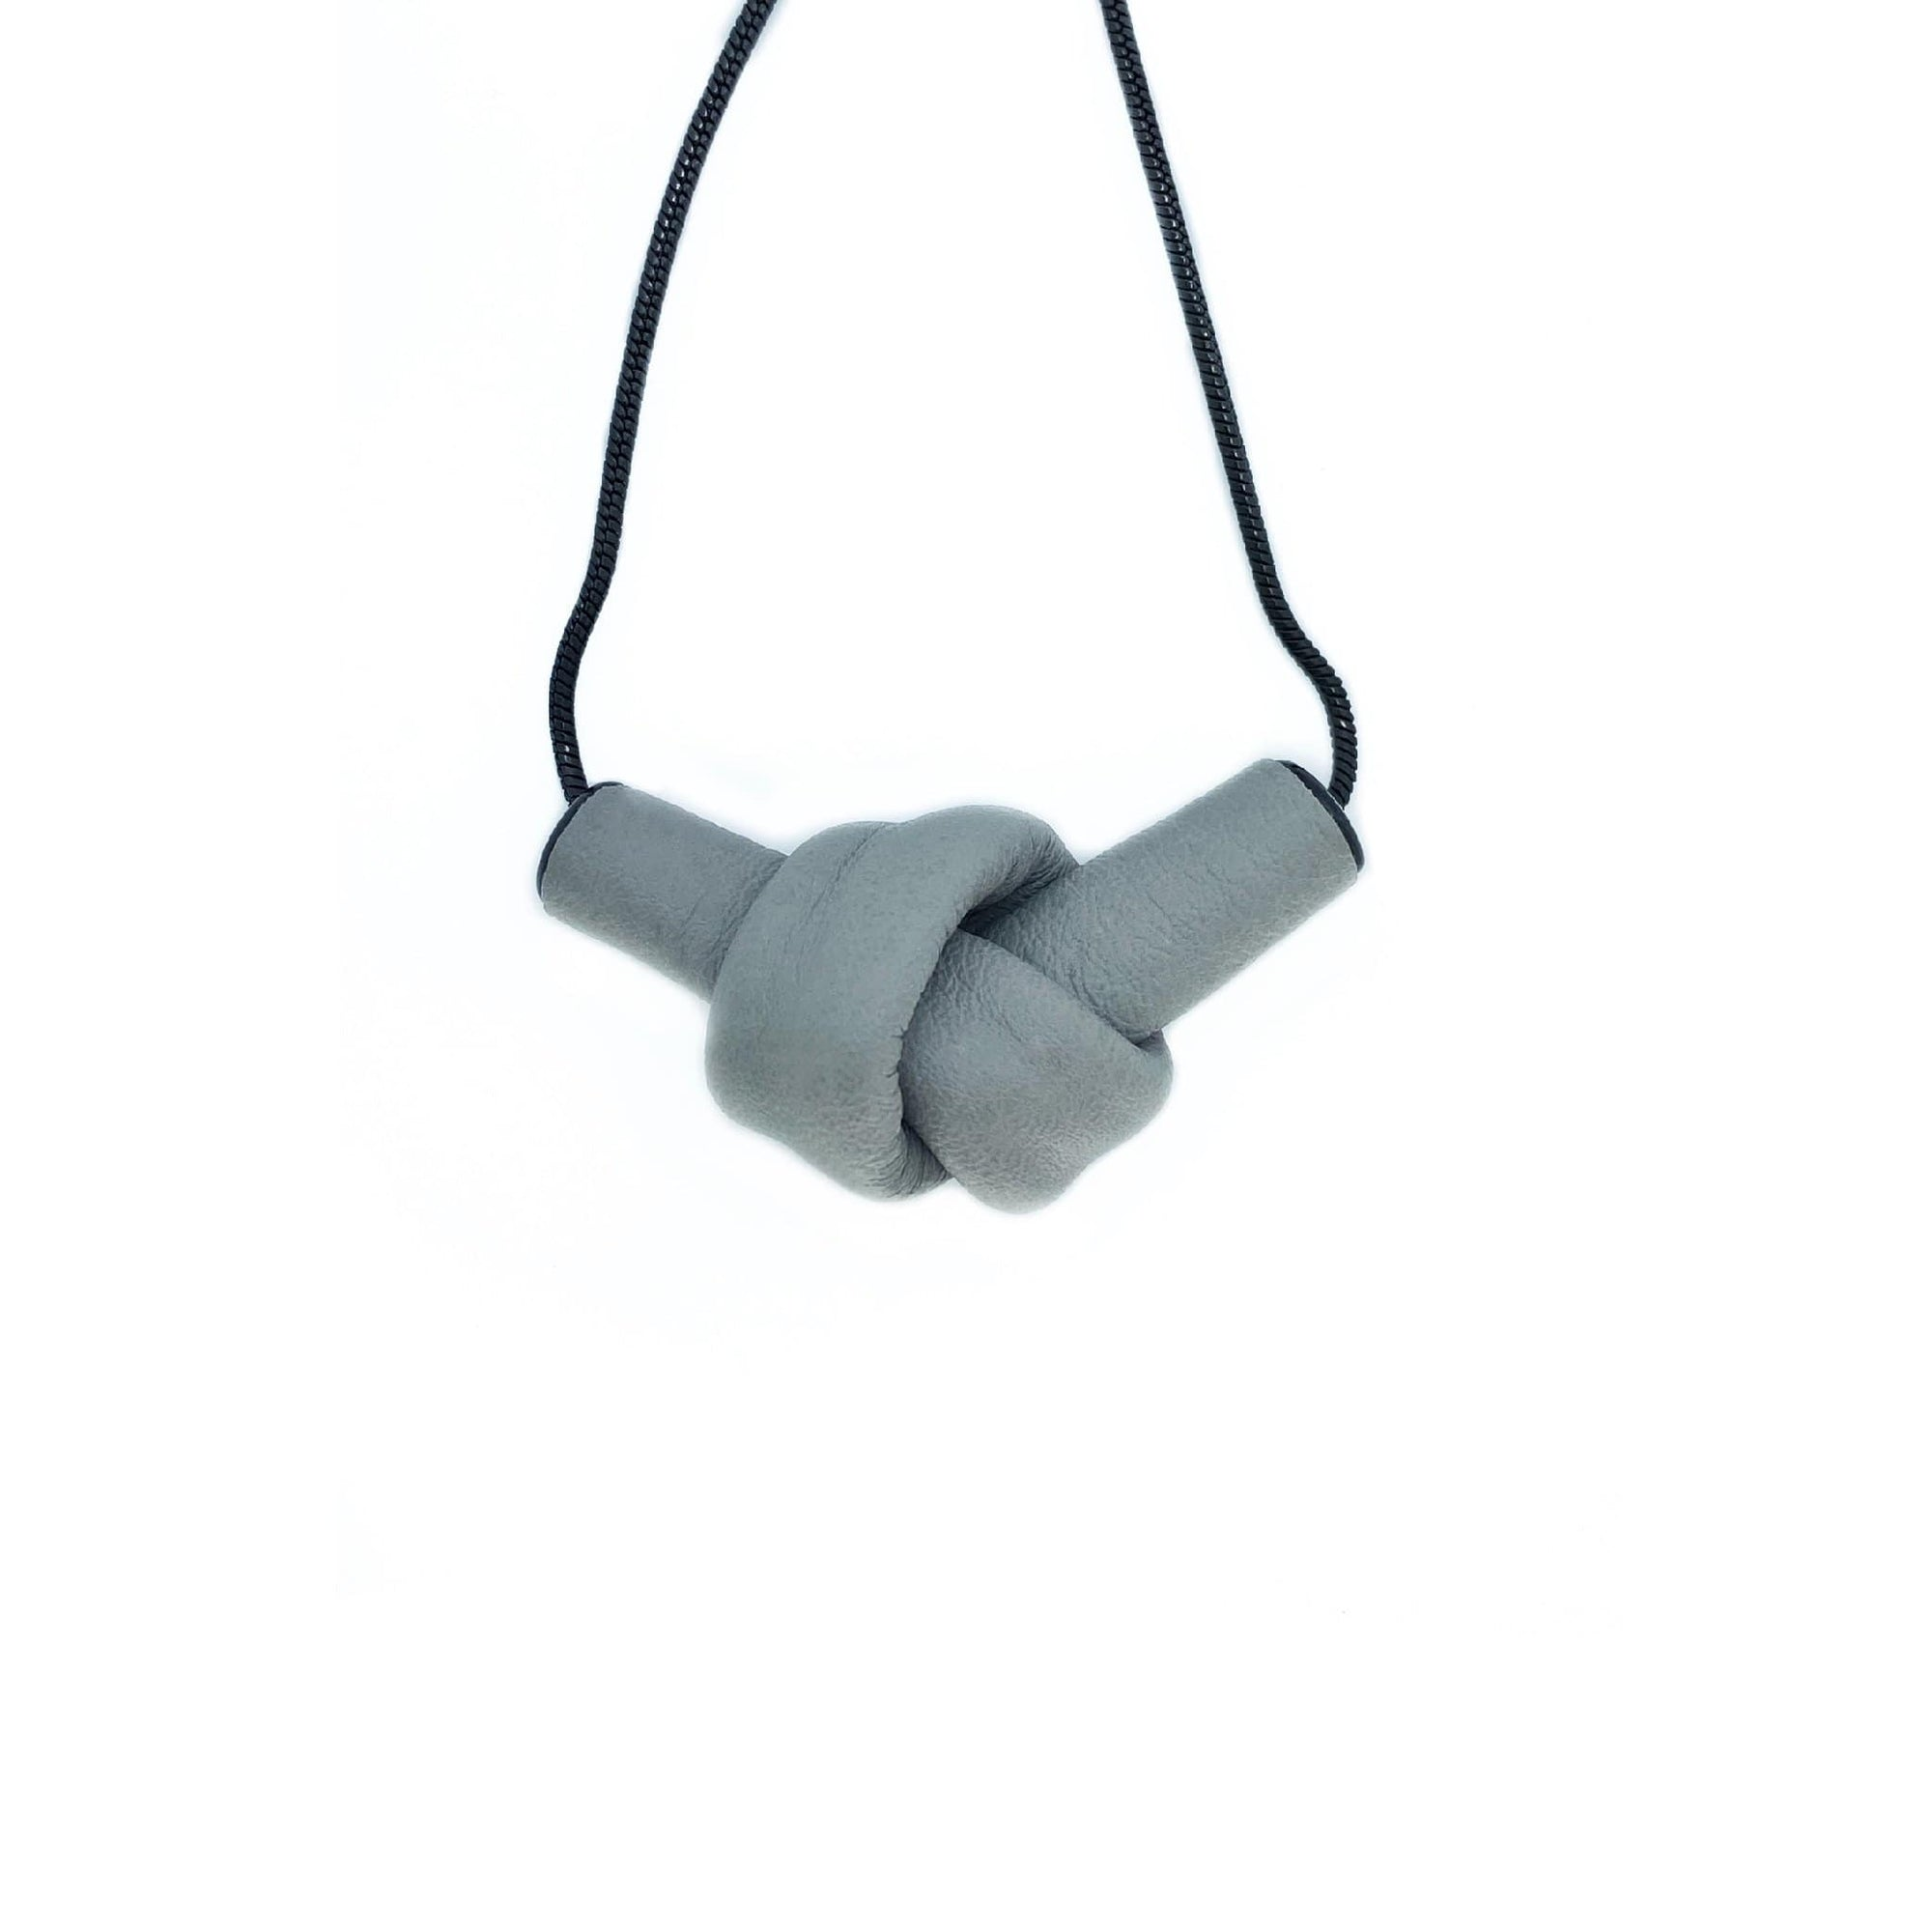 WAIWAI Necklaces N009 leather knot grey